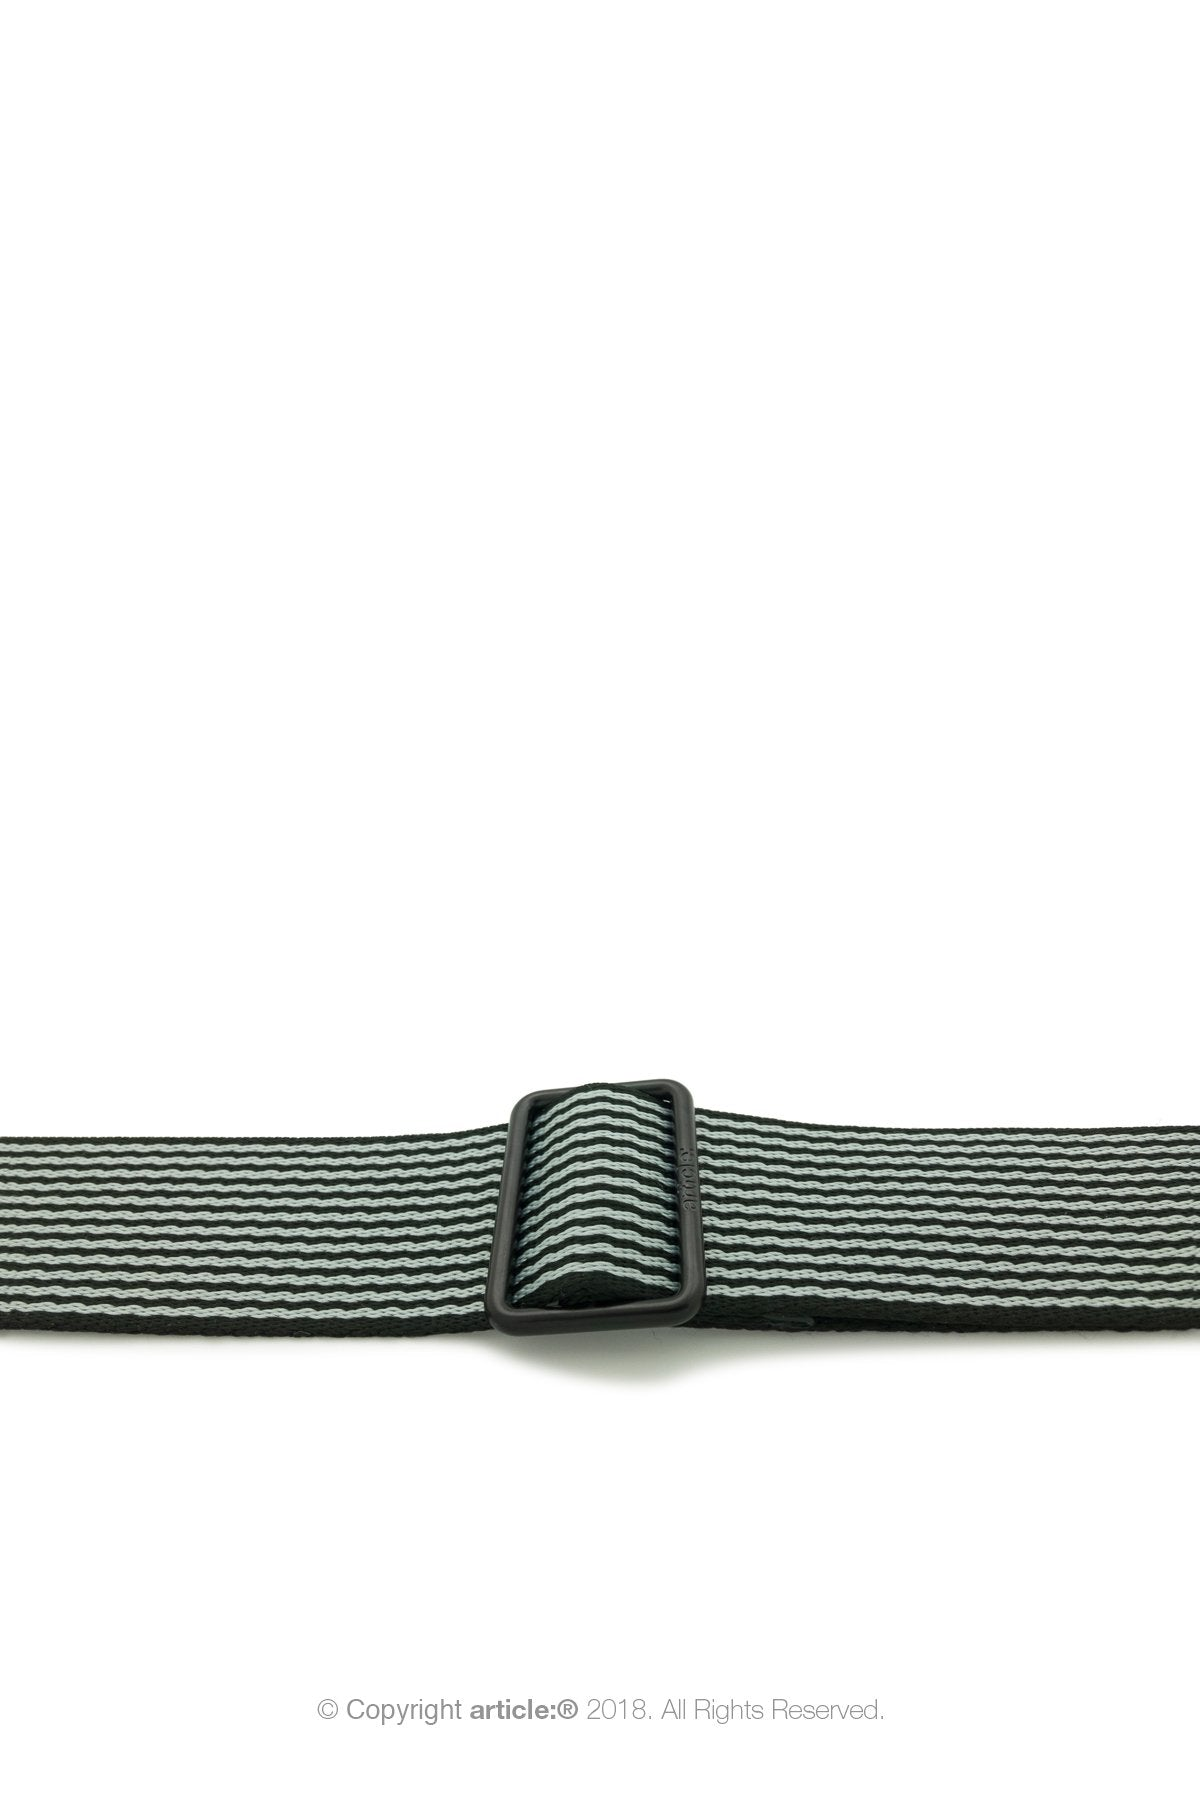 article: #320 Crossbody Strap - Stripe